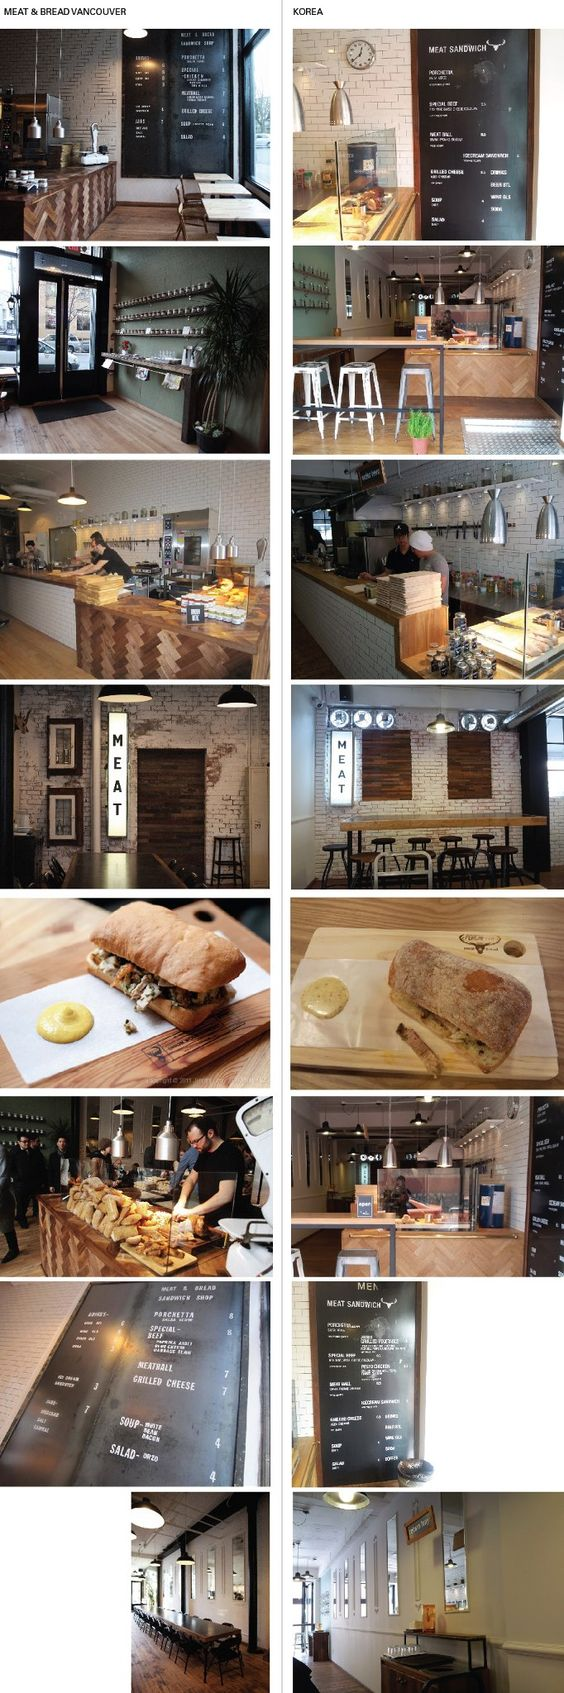 Similar style/menu. Masculine. Industrial. Our shop is much brighter.